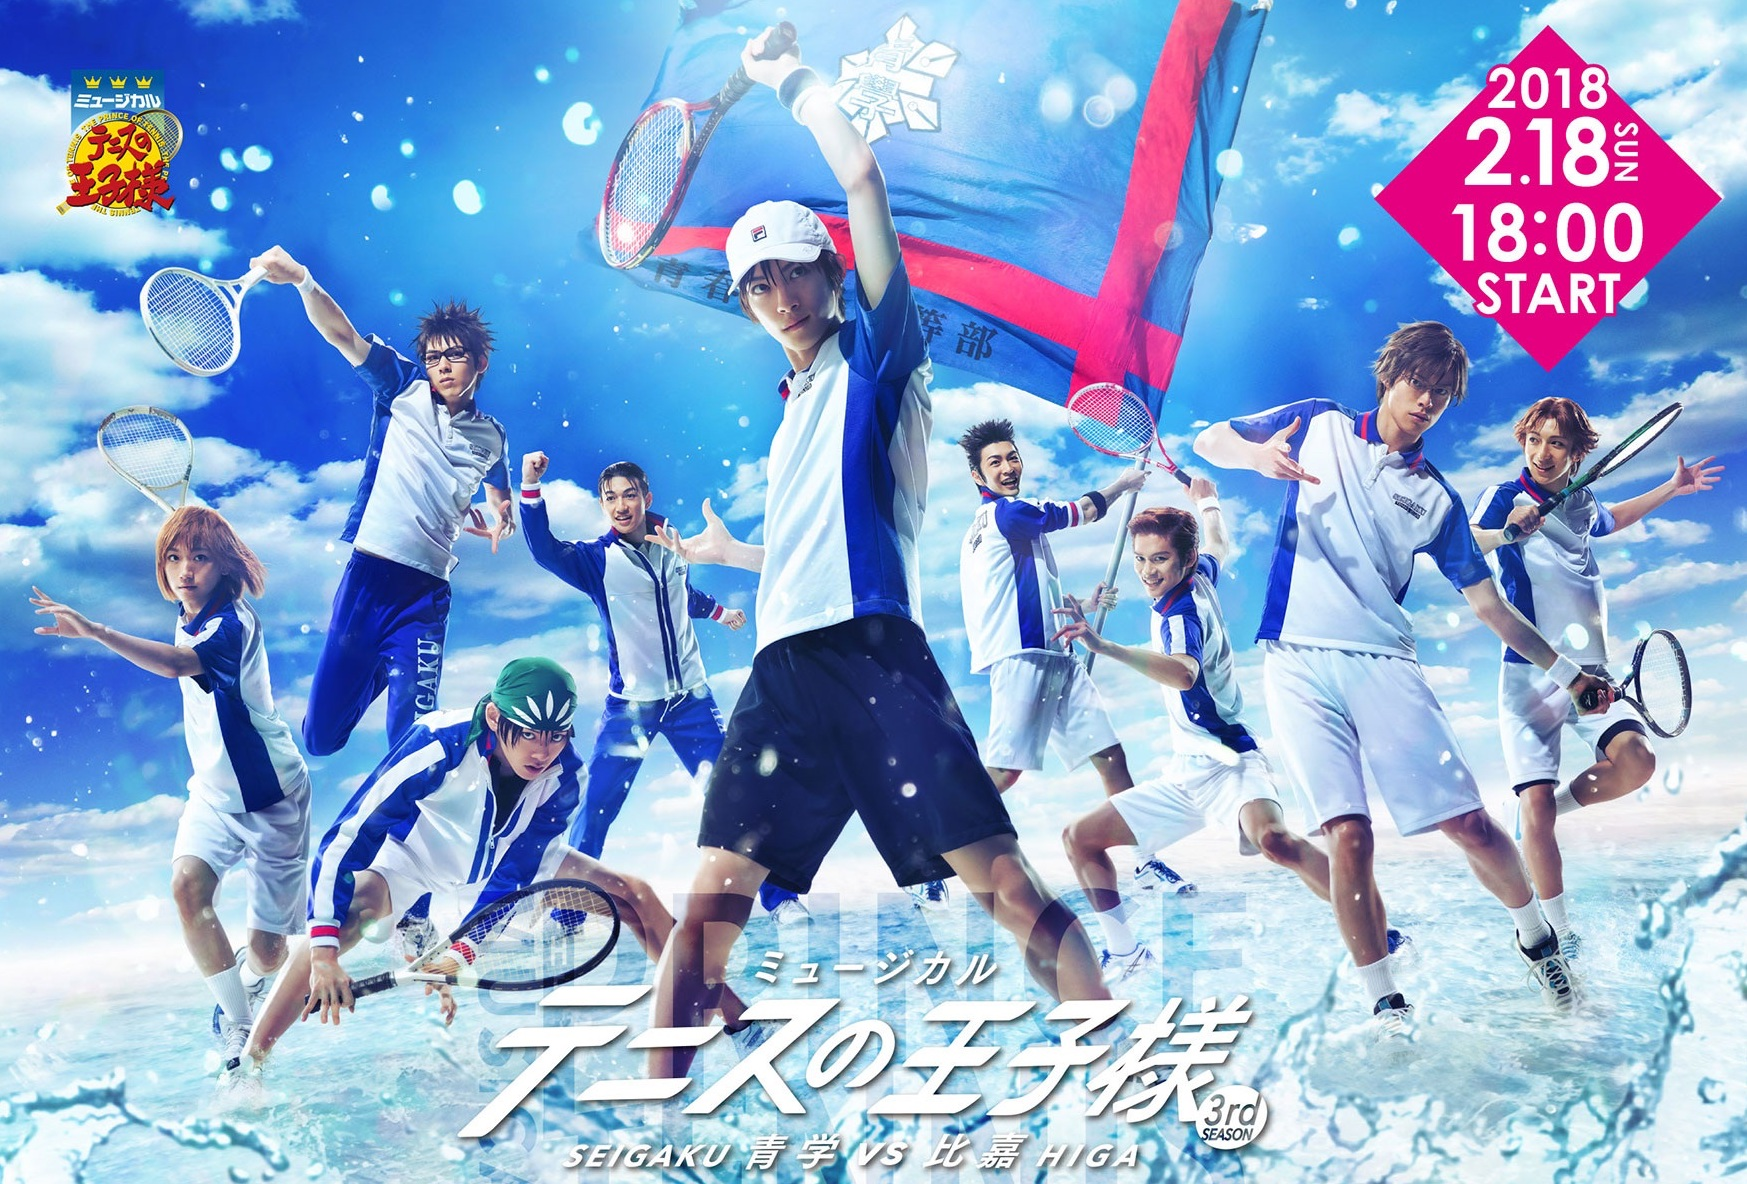 Prince Of Tennis The Musical Live Viewing To Be Streamed In Japan And Hong Kong Moshi Moshi Nippon もしもしにっぽん